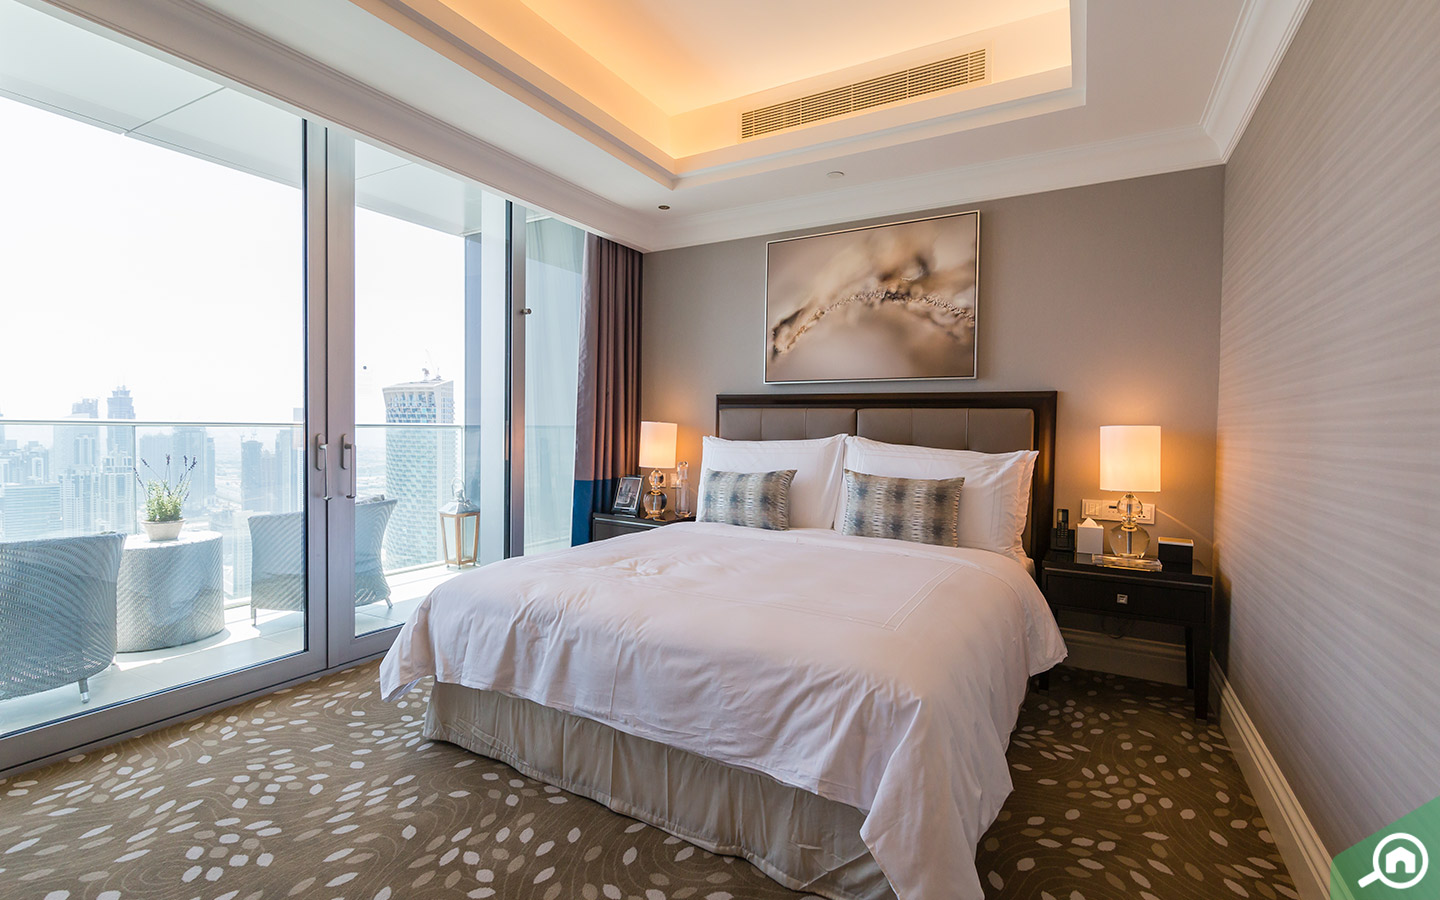 5-bedroom penthouse in Downtown Dubai